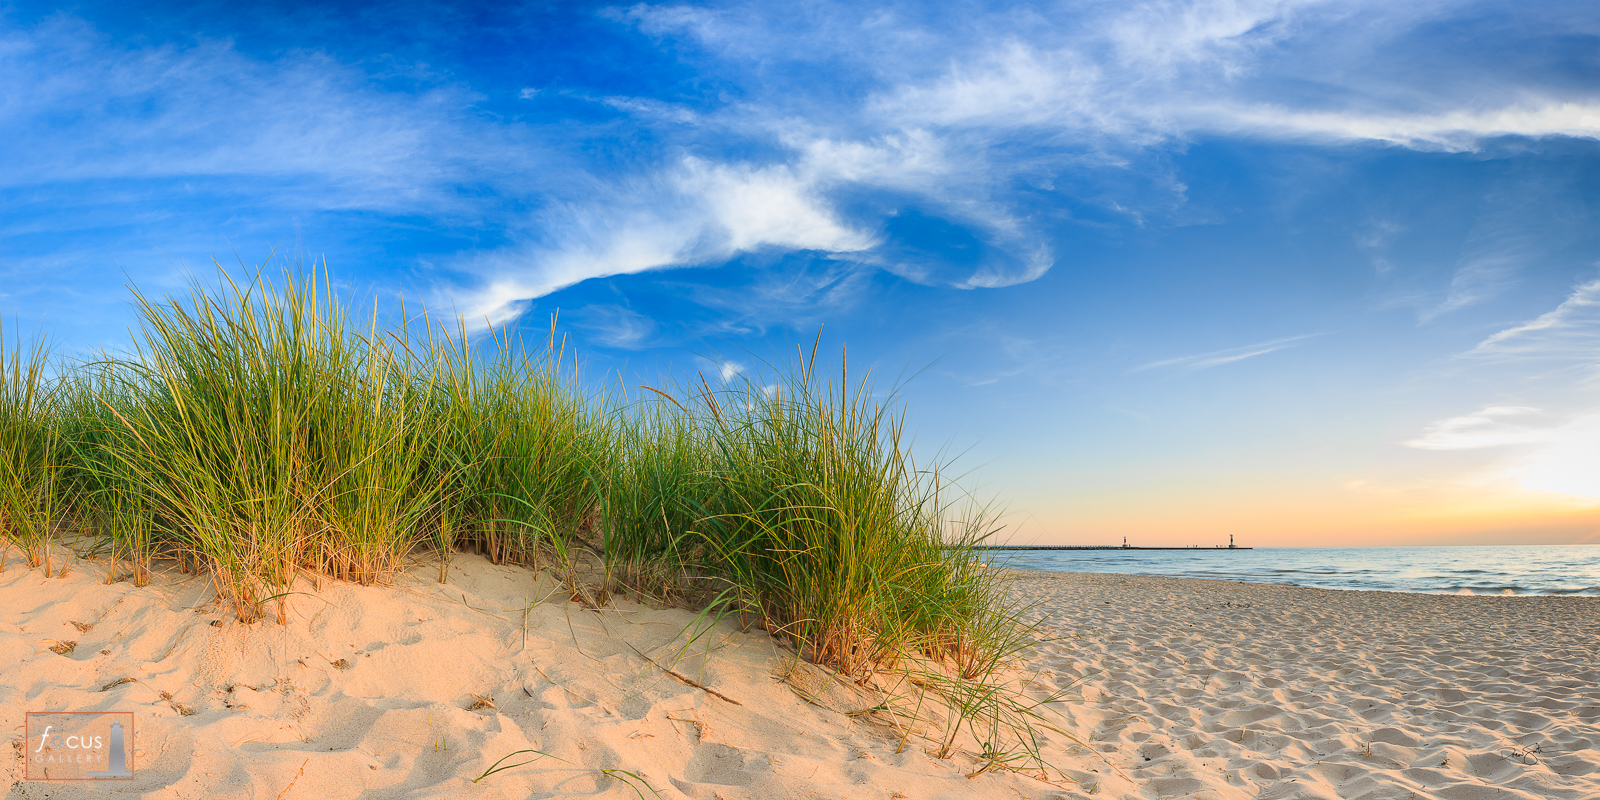 Beach grass and shoreline at Portage Point, Manistee County, Michigan.